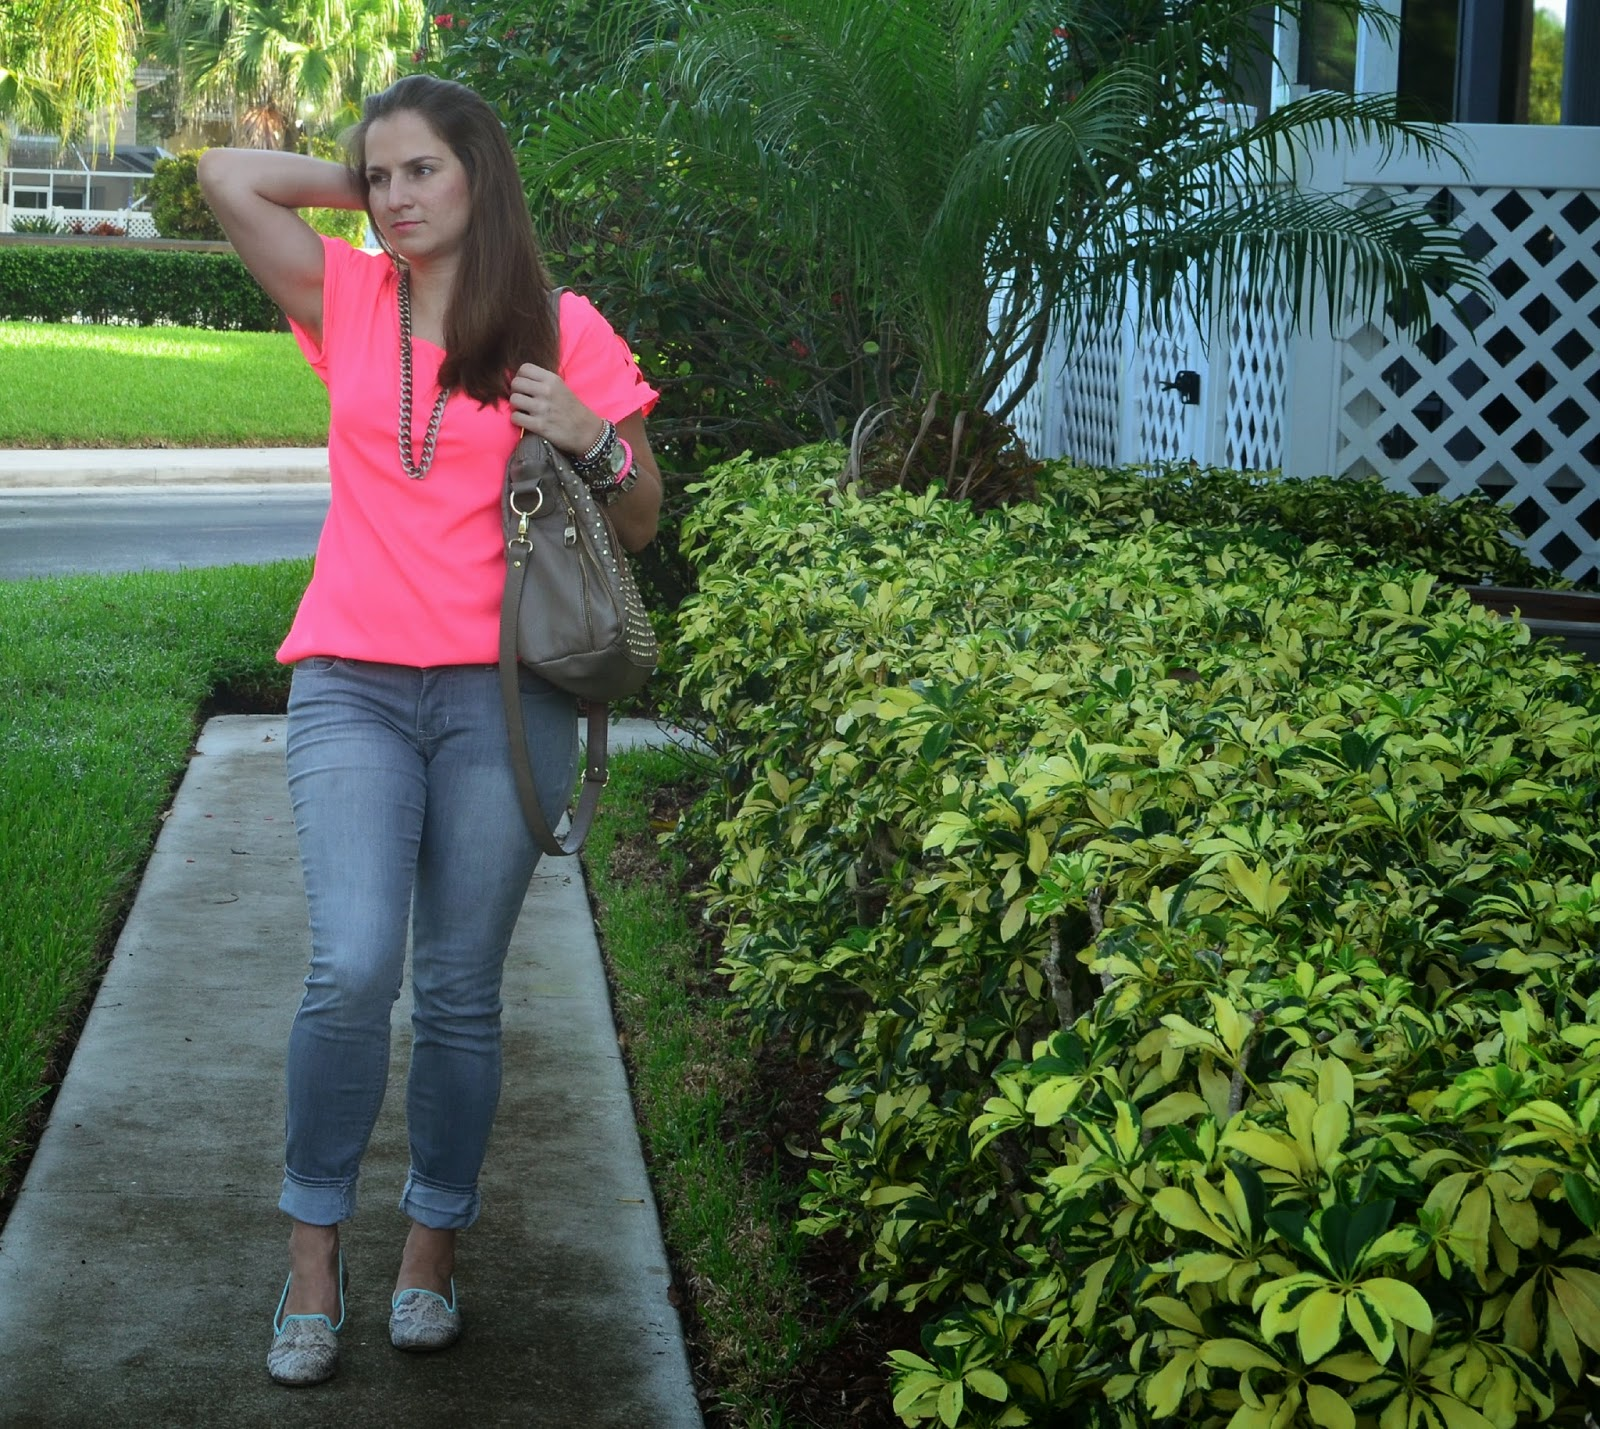 Neon top - Gray jeans - studded bag - printed flats - arm party - Emma & Sophia